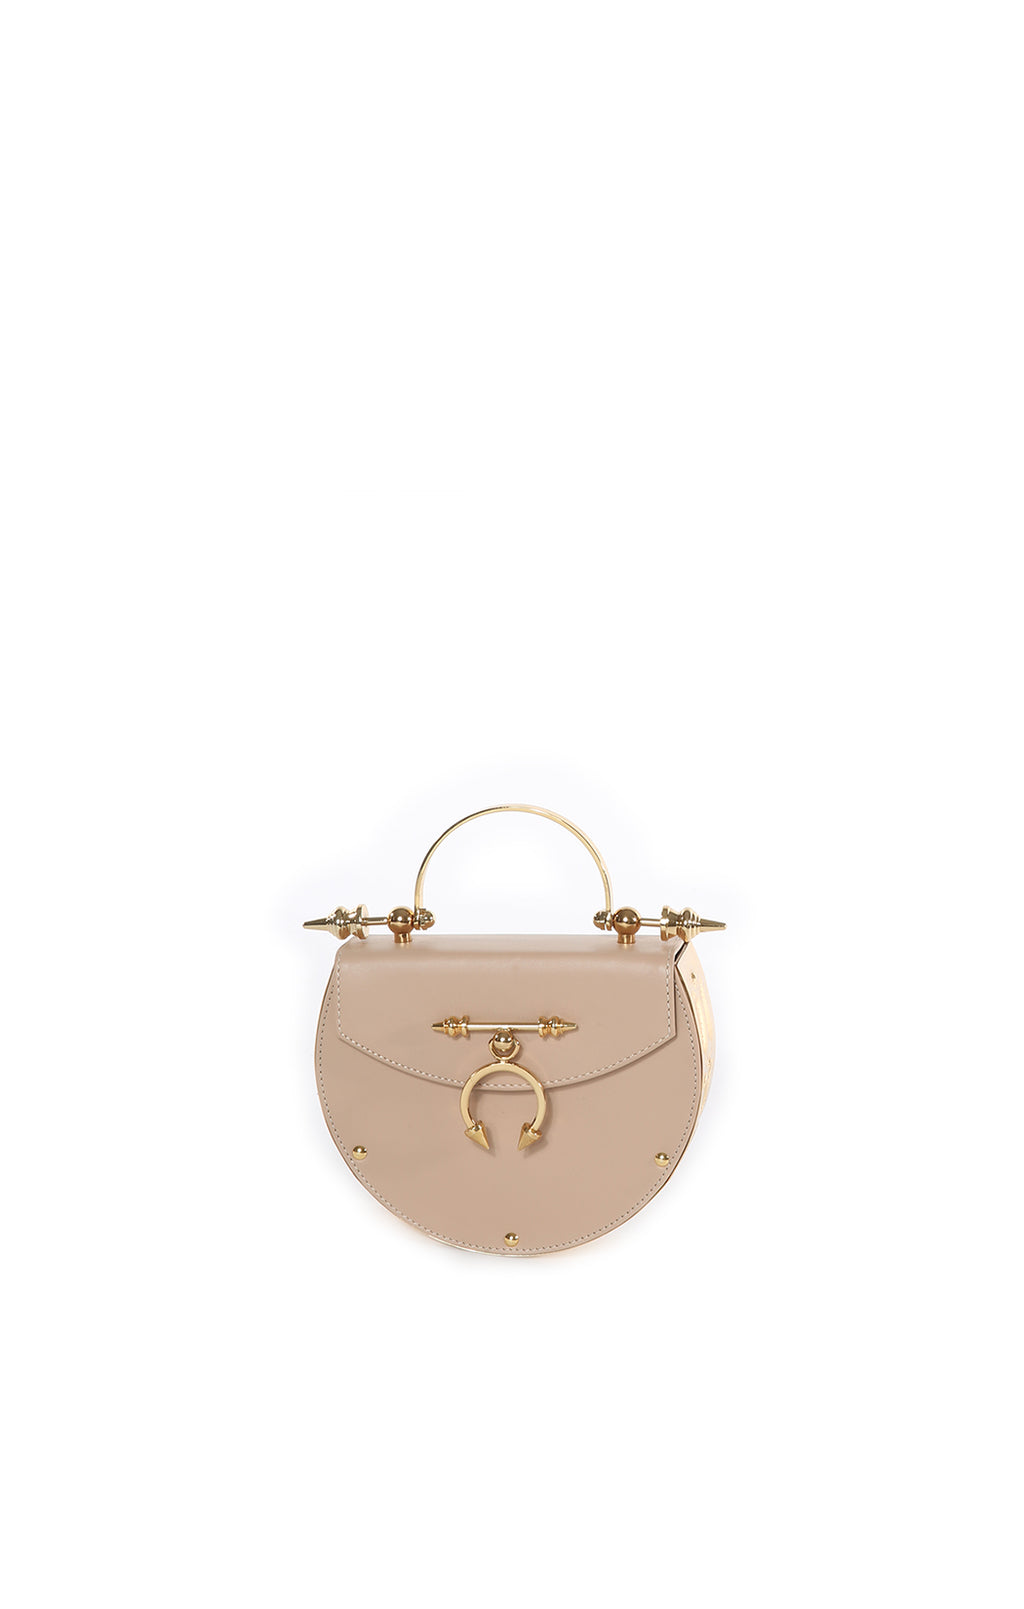 Front view of OKHTEIN Handbag Size: 7 in x 6 in x 2 in